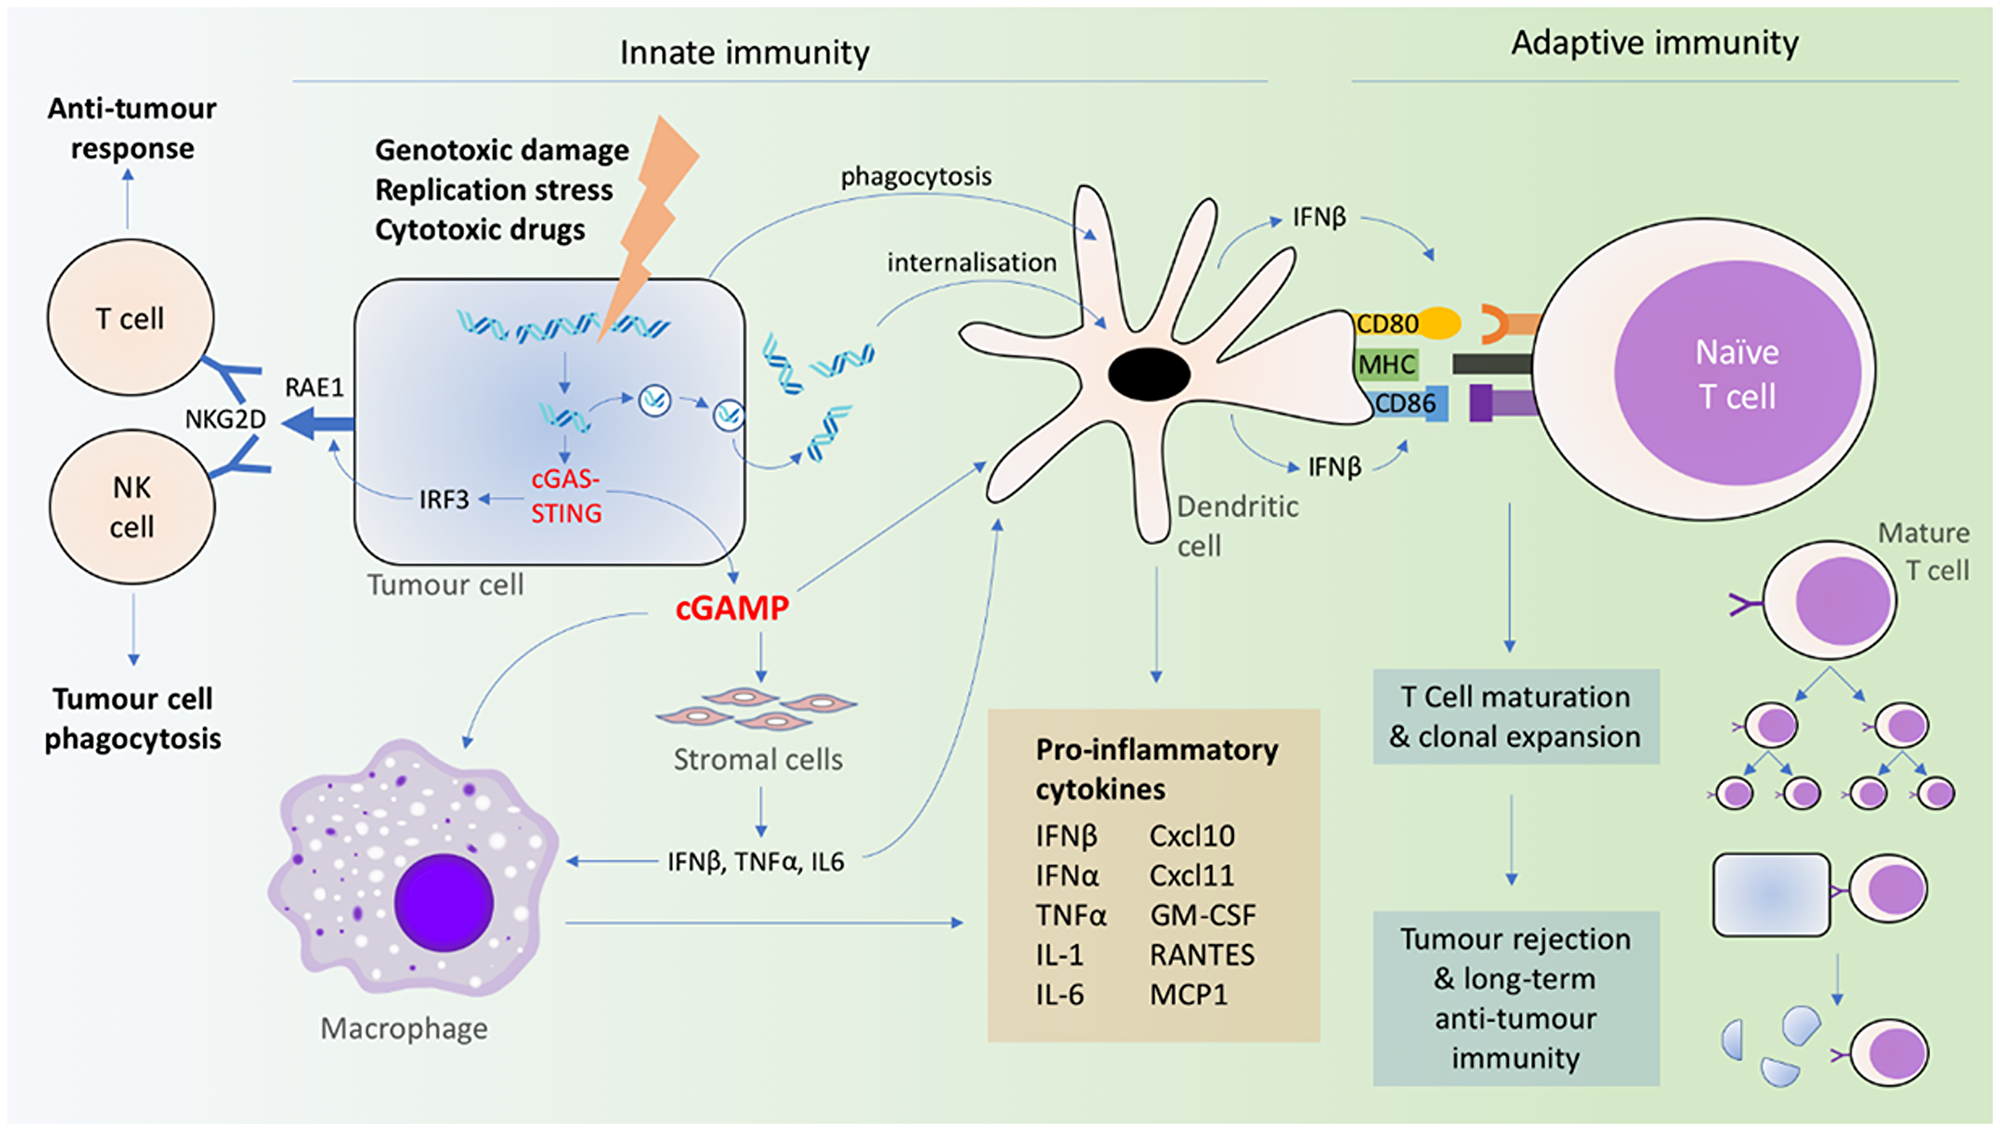 Coordination of innate and adaptive immune signaling resulting from cGAS-STING activation.